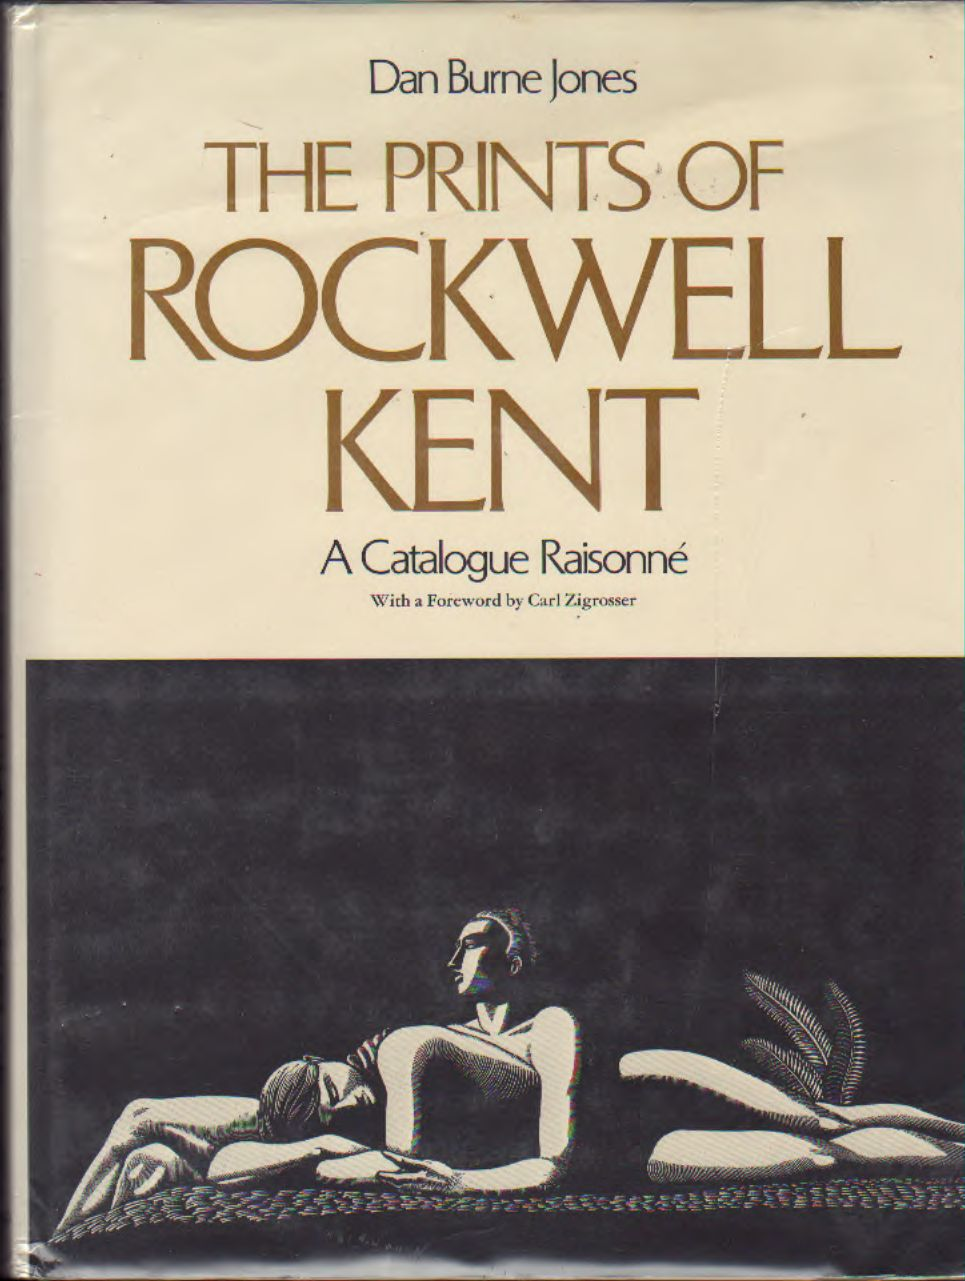 The Prints of Rockwell Kent – A catalogue Raisonné